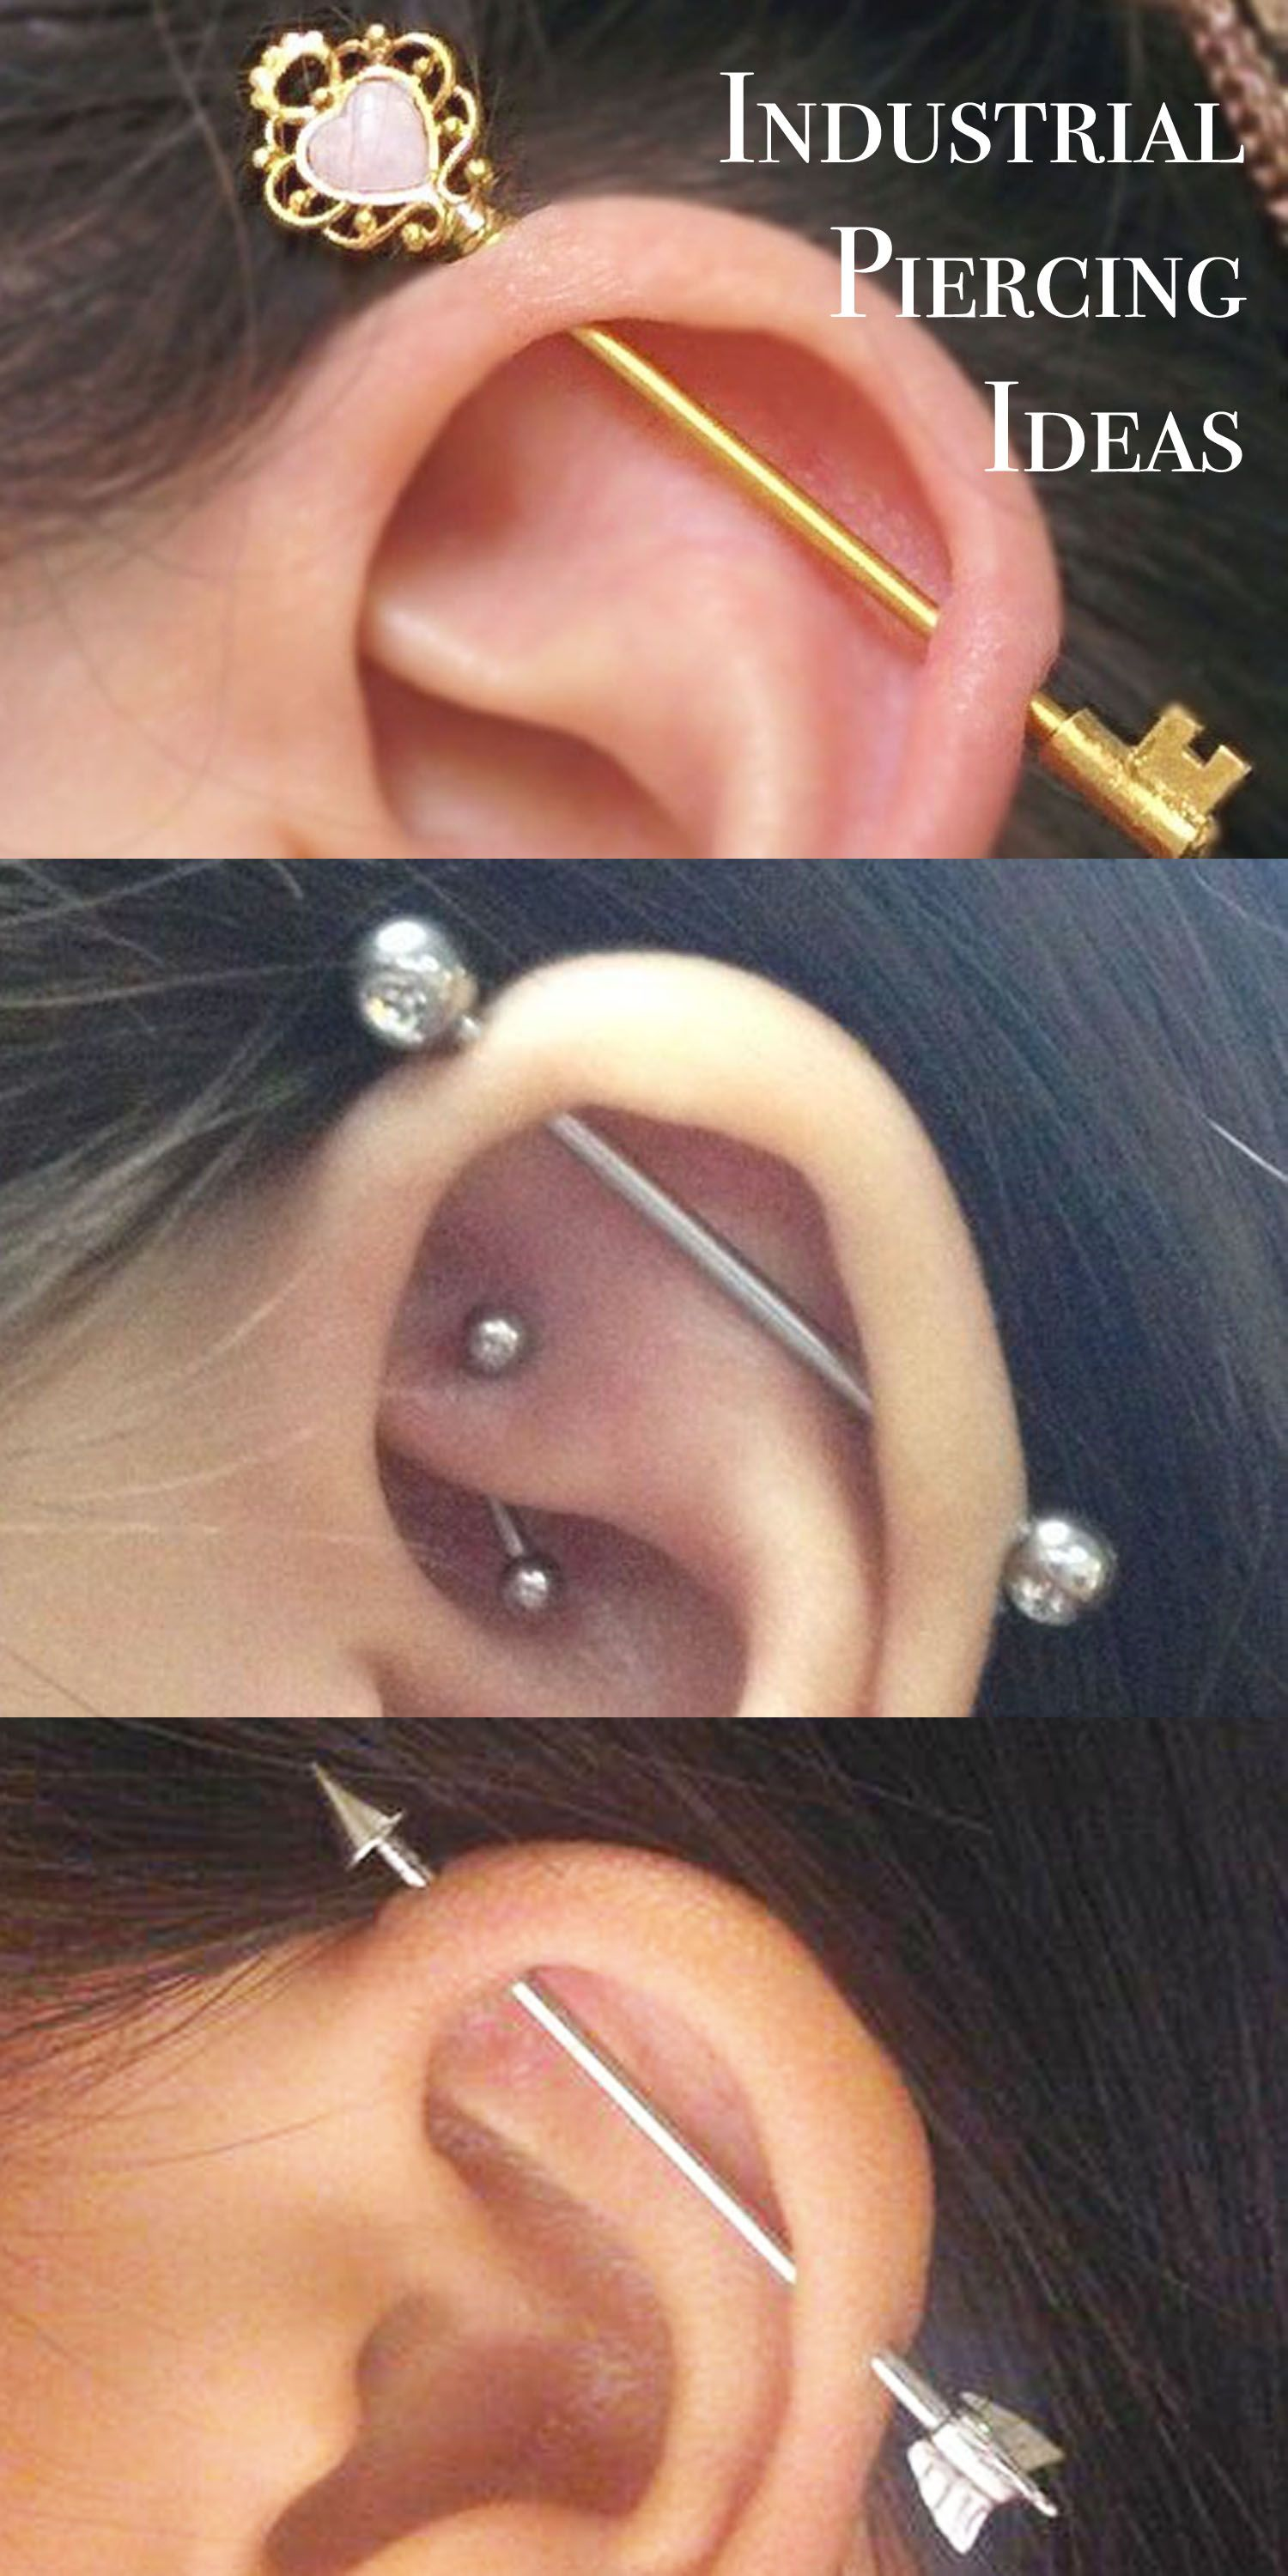 New piercing ideas  Cute and Unique Ear Piercing Ideas  Kylie Jenner  G Industrial